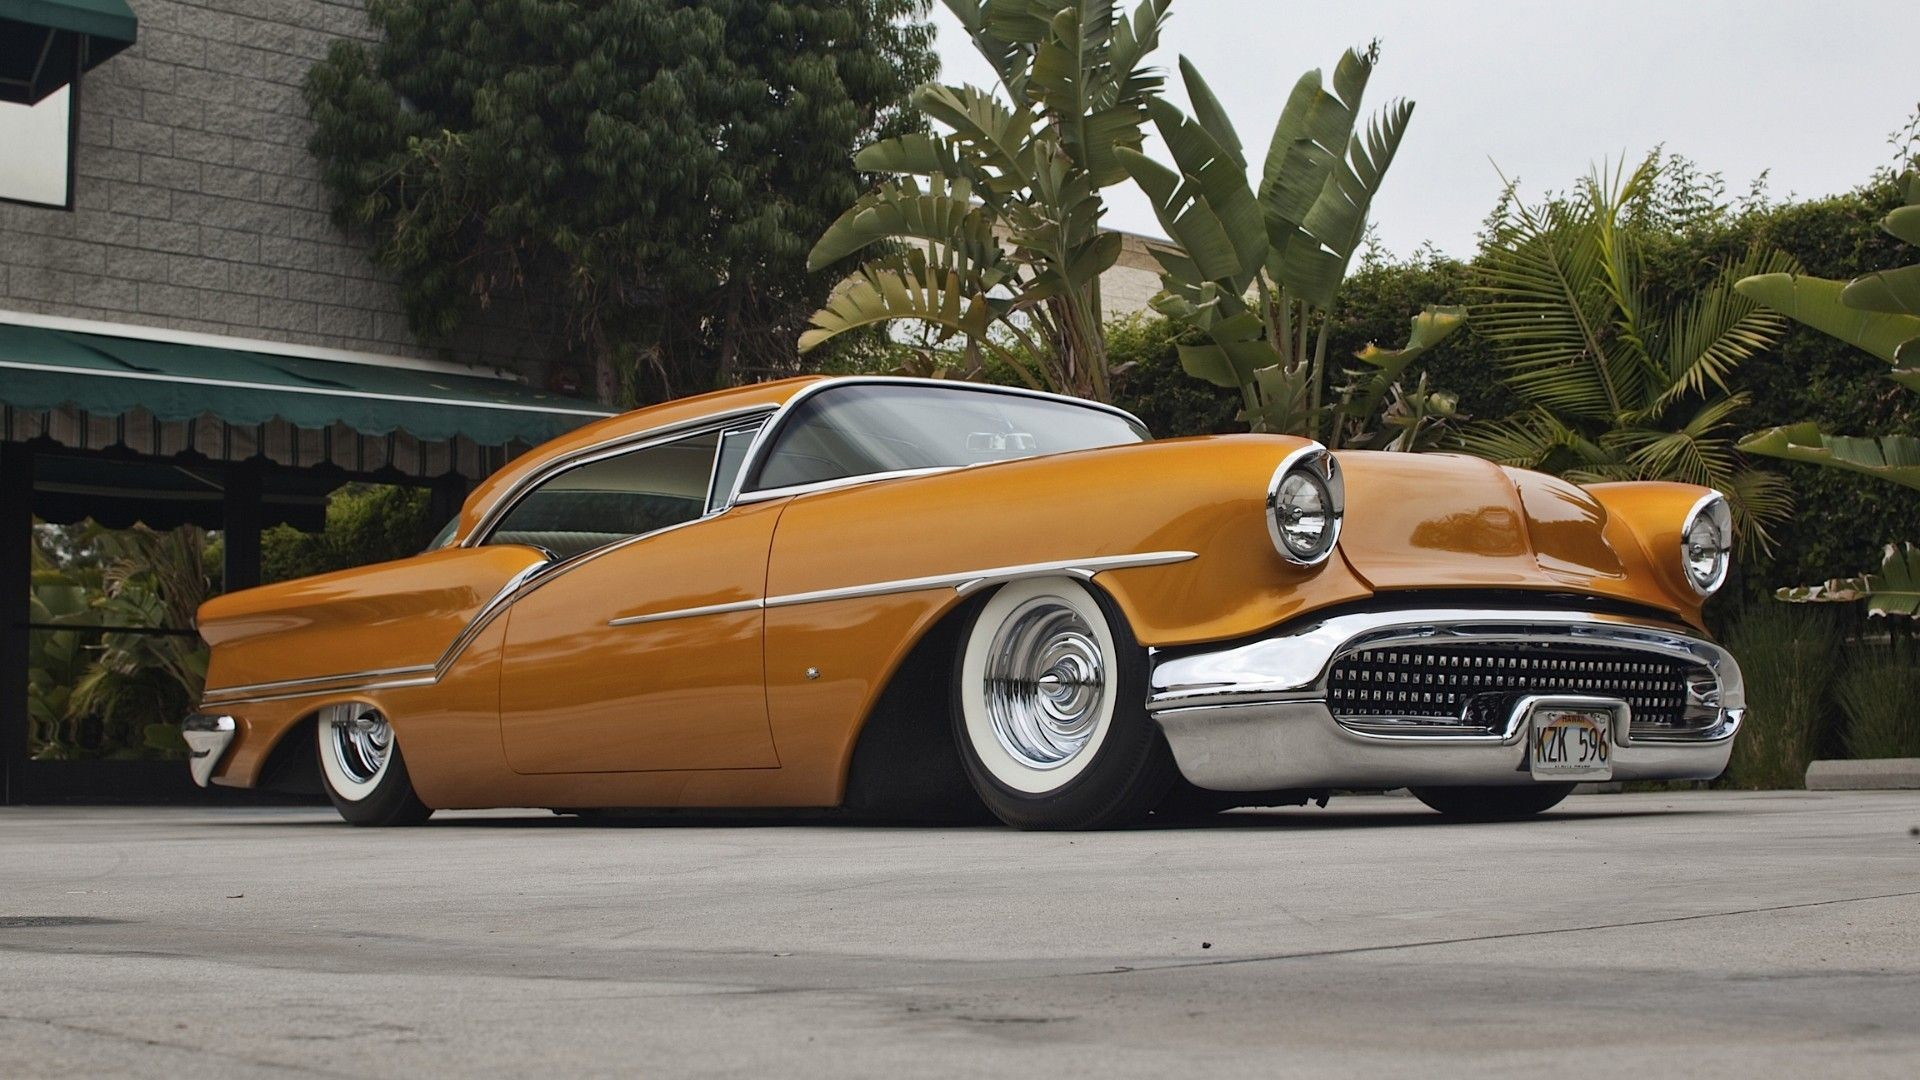 Res: 1920x1080, Download Lowrider Car Wallpapers Free Hd Backgrounds Cave Of Computer